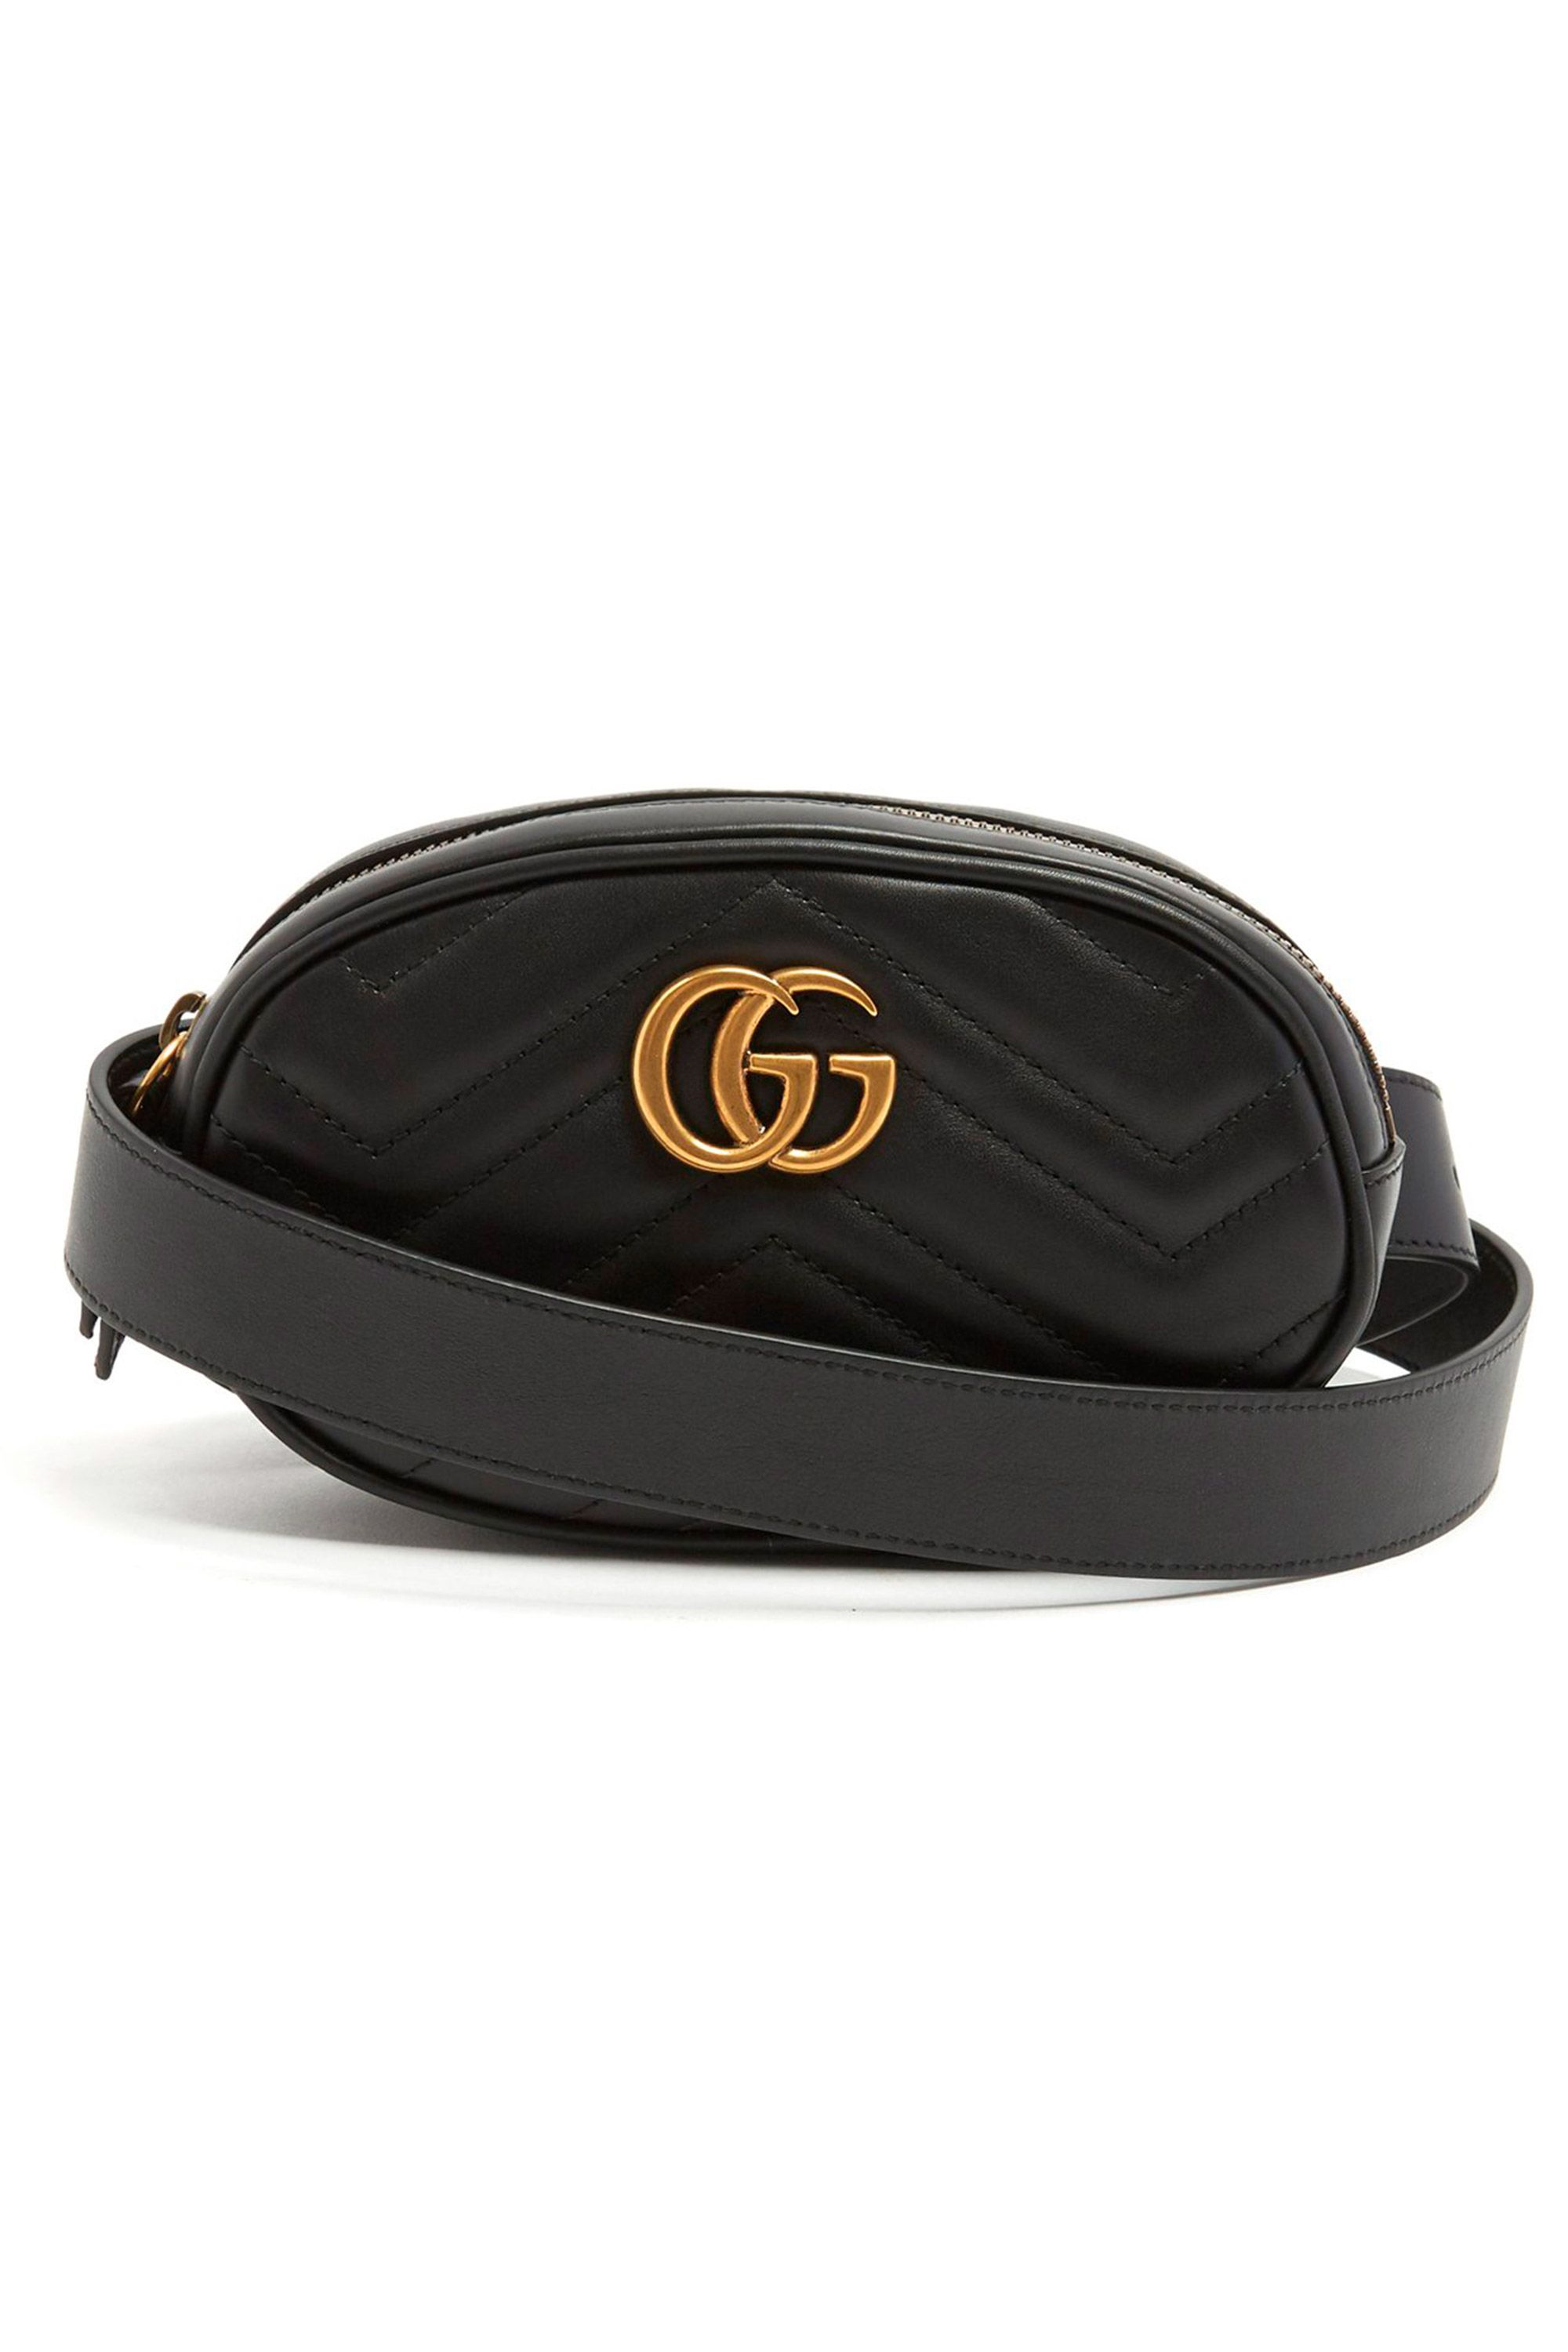 c7781739bf3bfa 10 best belt bags to buy now - How to wear a belt bag